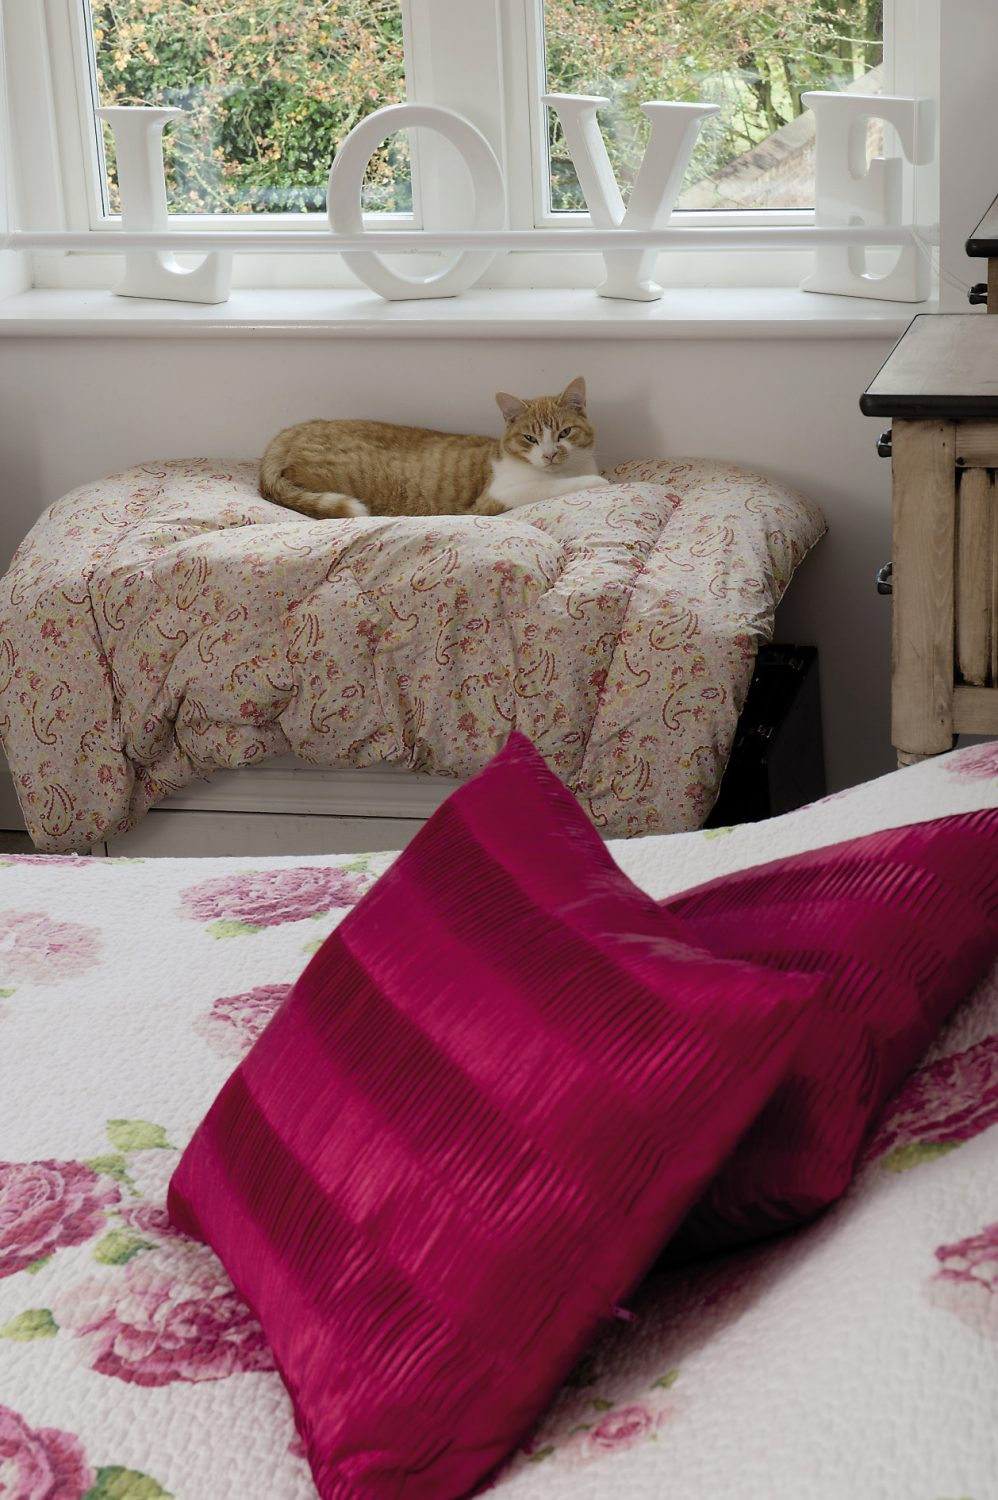 The bed in the master bedroom is covered with an Italian handmade quilt festooned with vivid pink and red blousy roses on one side and delicate rosebuds on the reverse